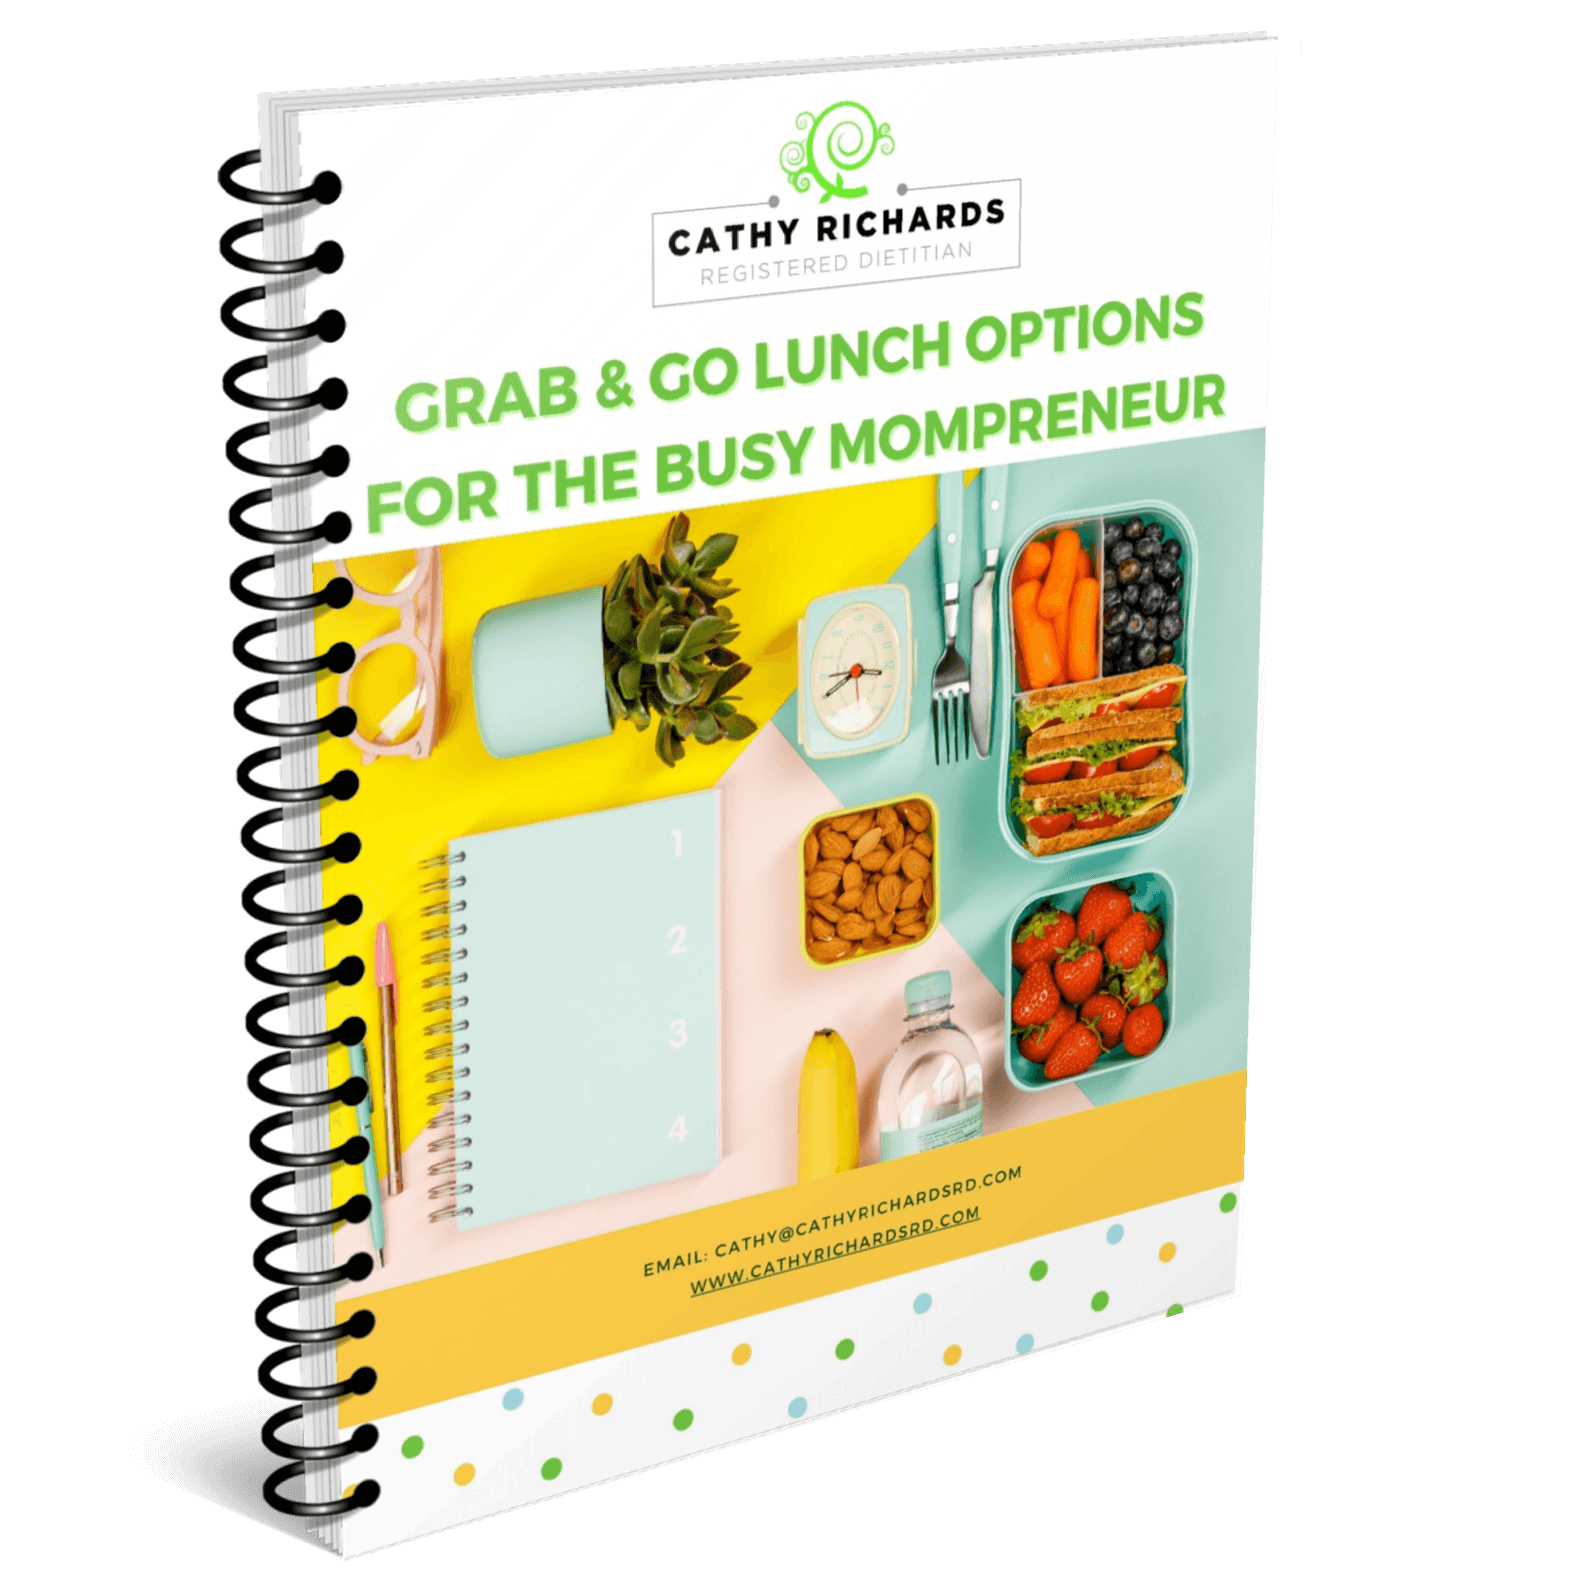 Grab & Go Lunch Options Cathy Richards RD